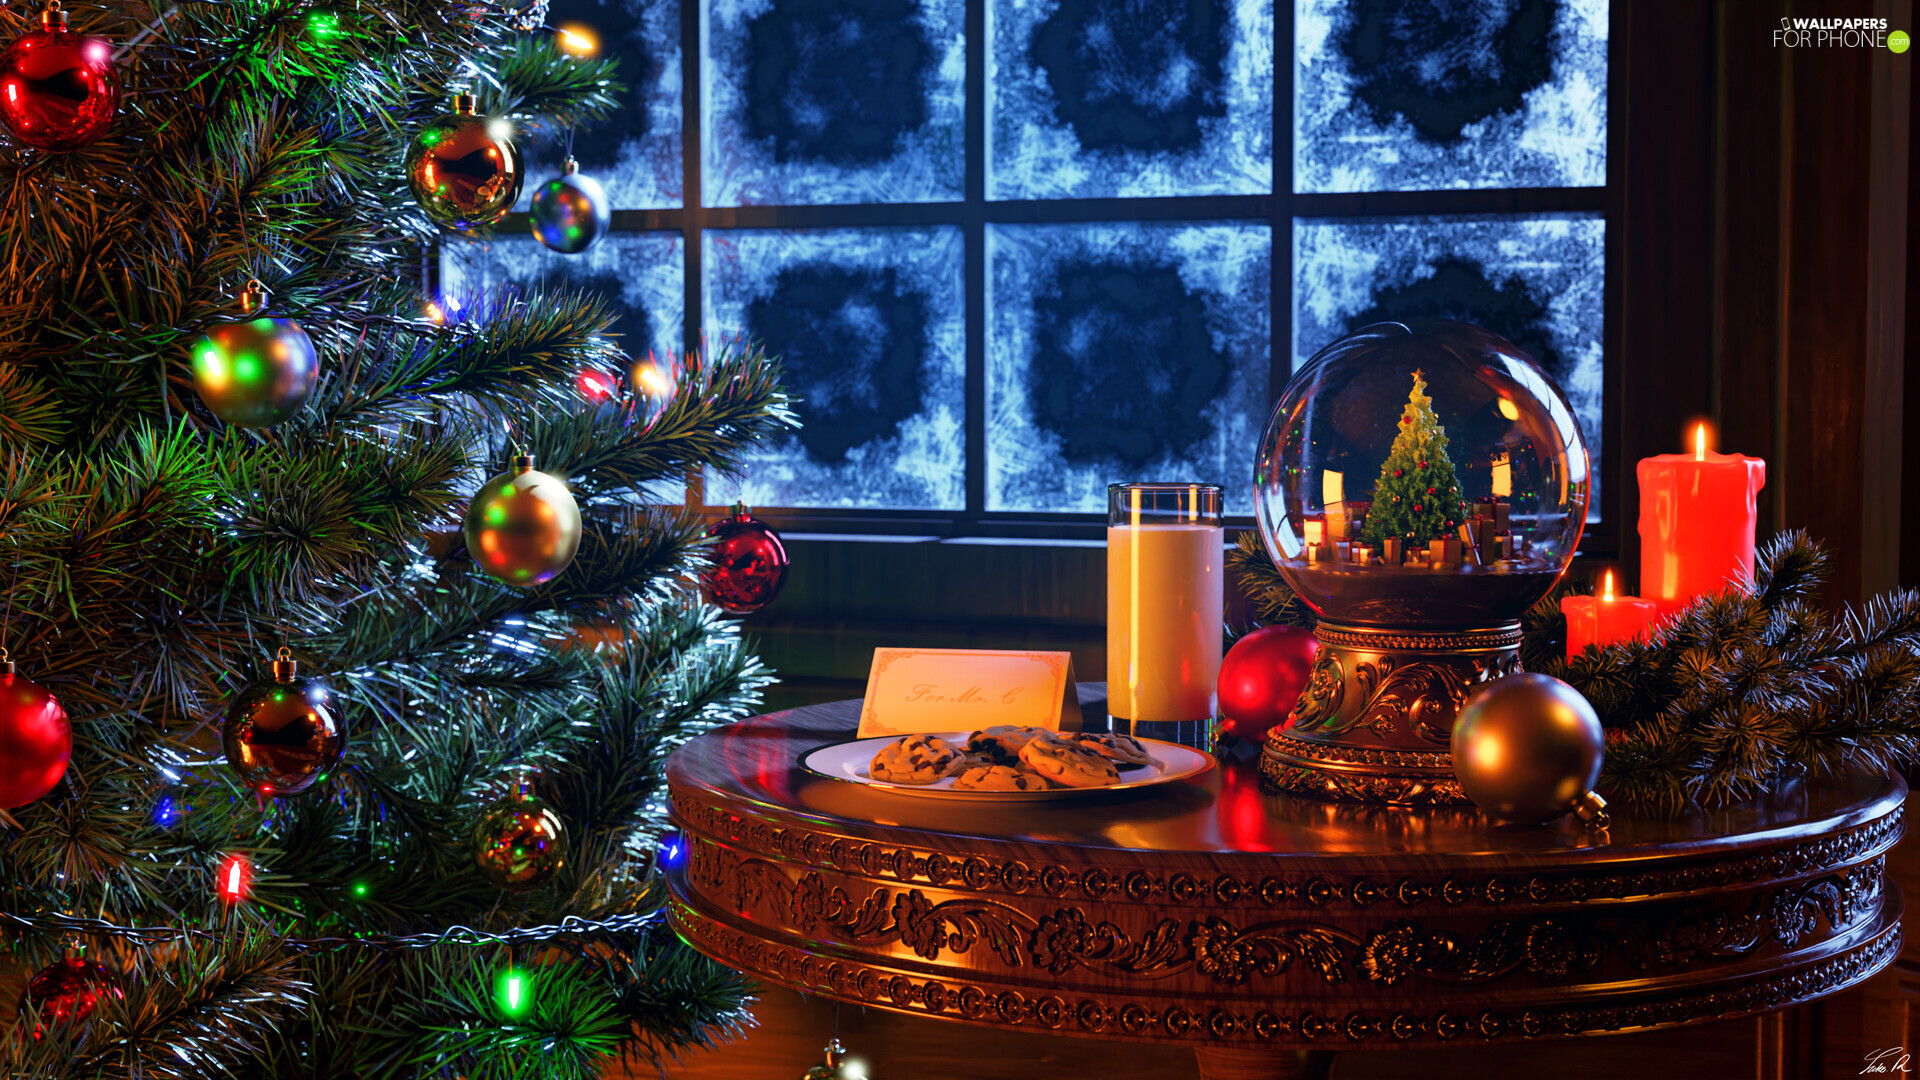 Orb, christmas tree, cookies, Table, Christmas, baubles, Candles